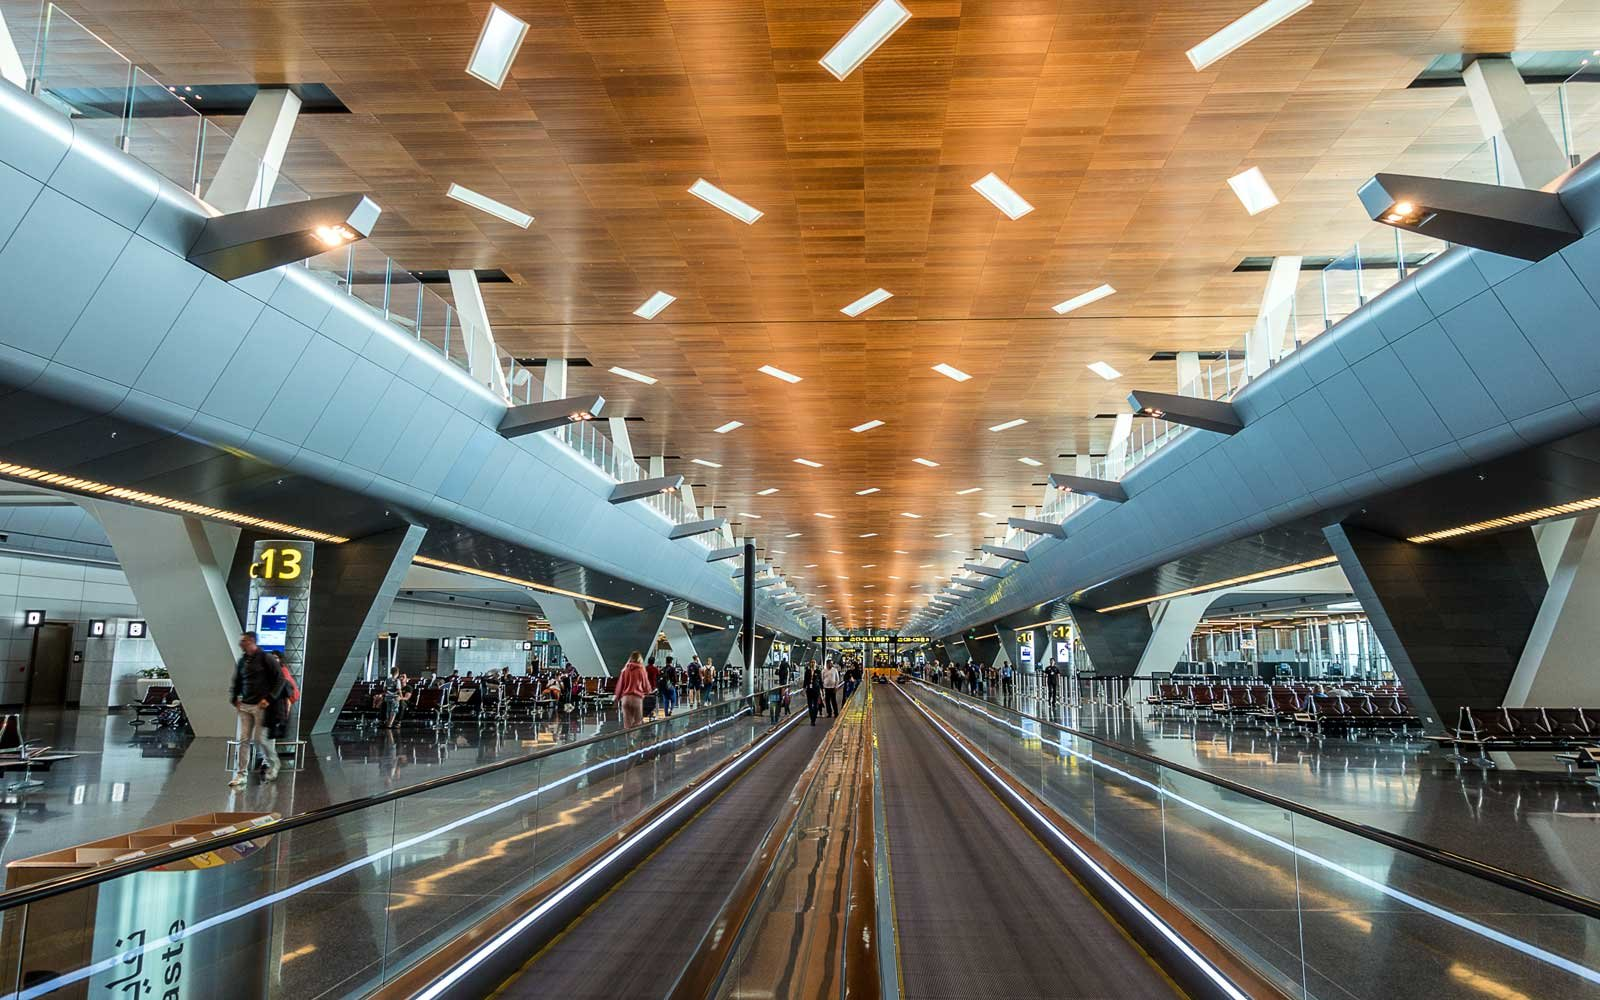 2. Hamad International Airport, Doha, Qatar